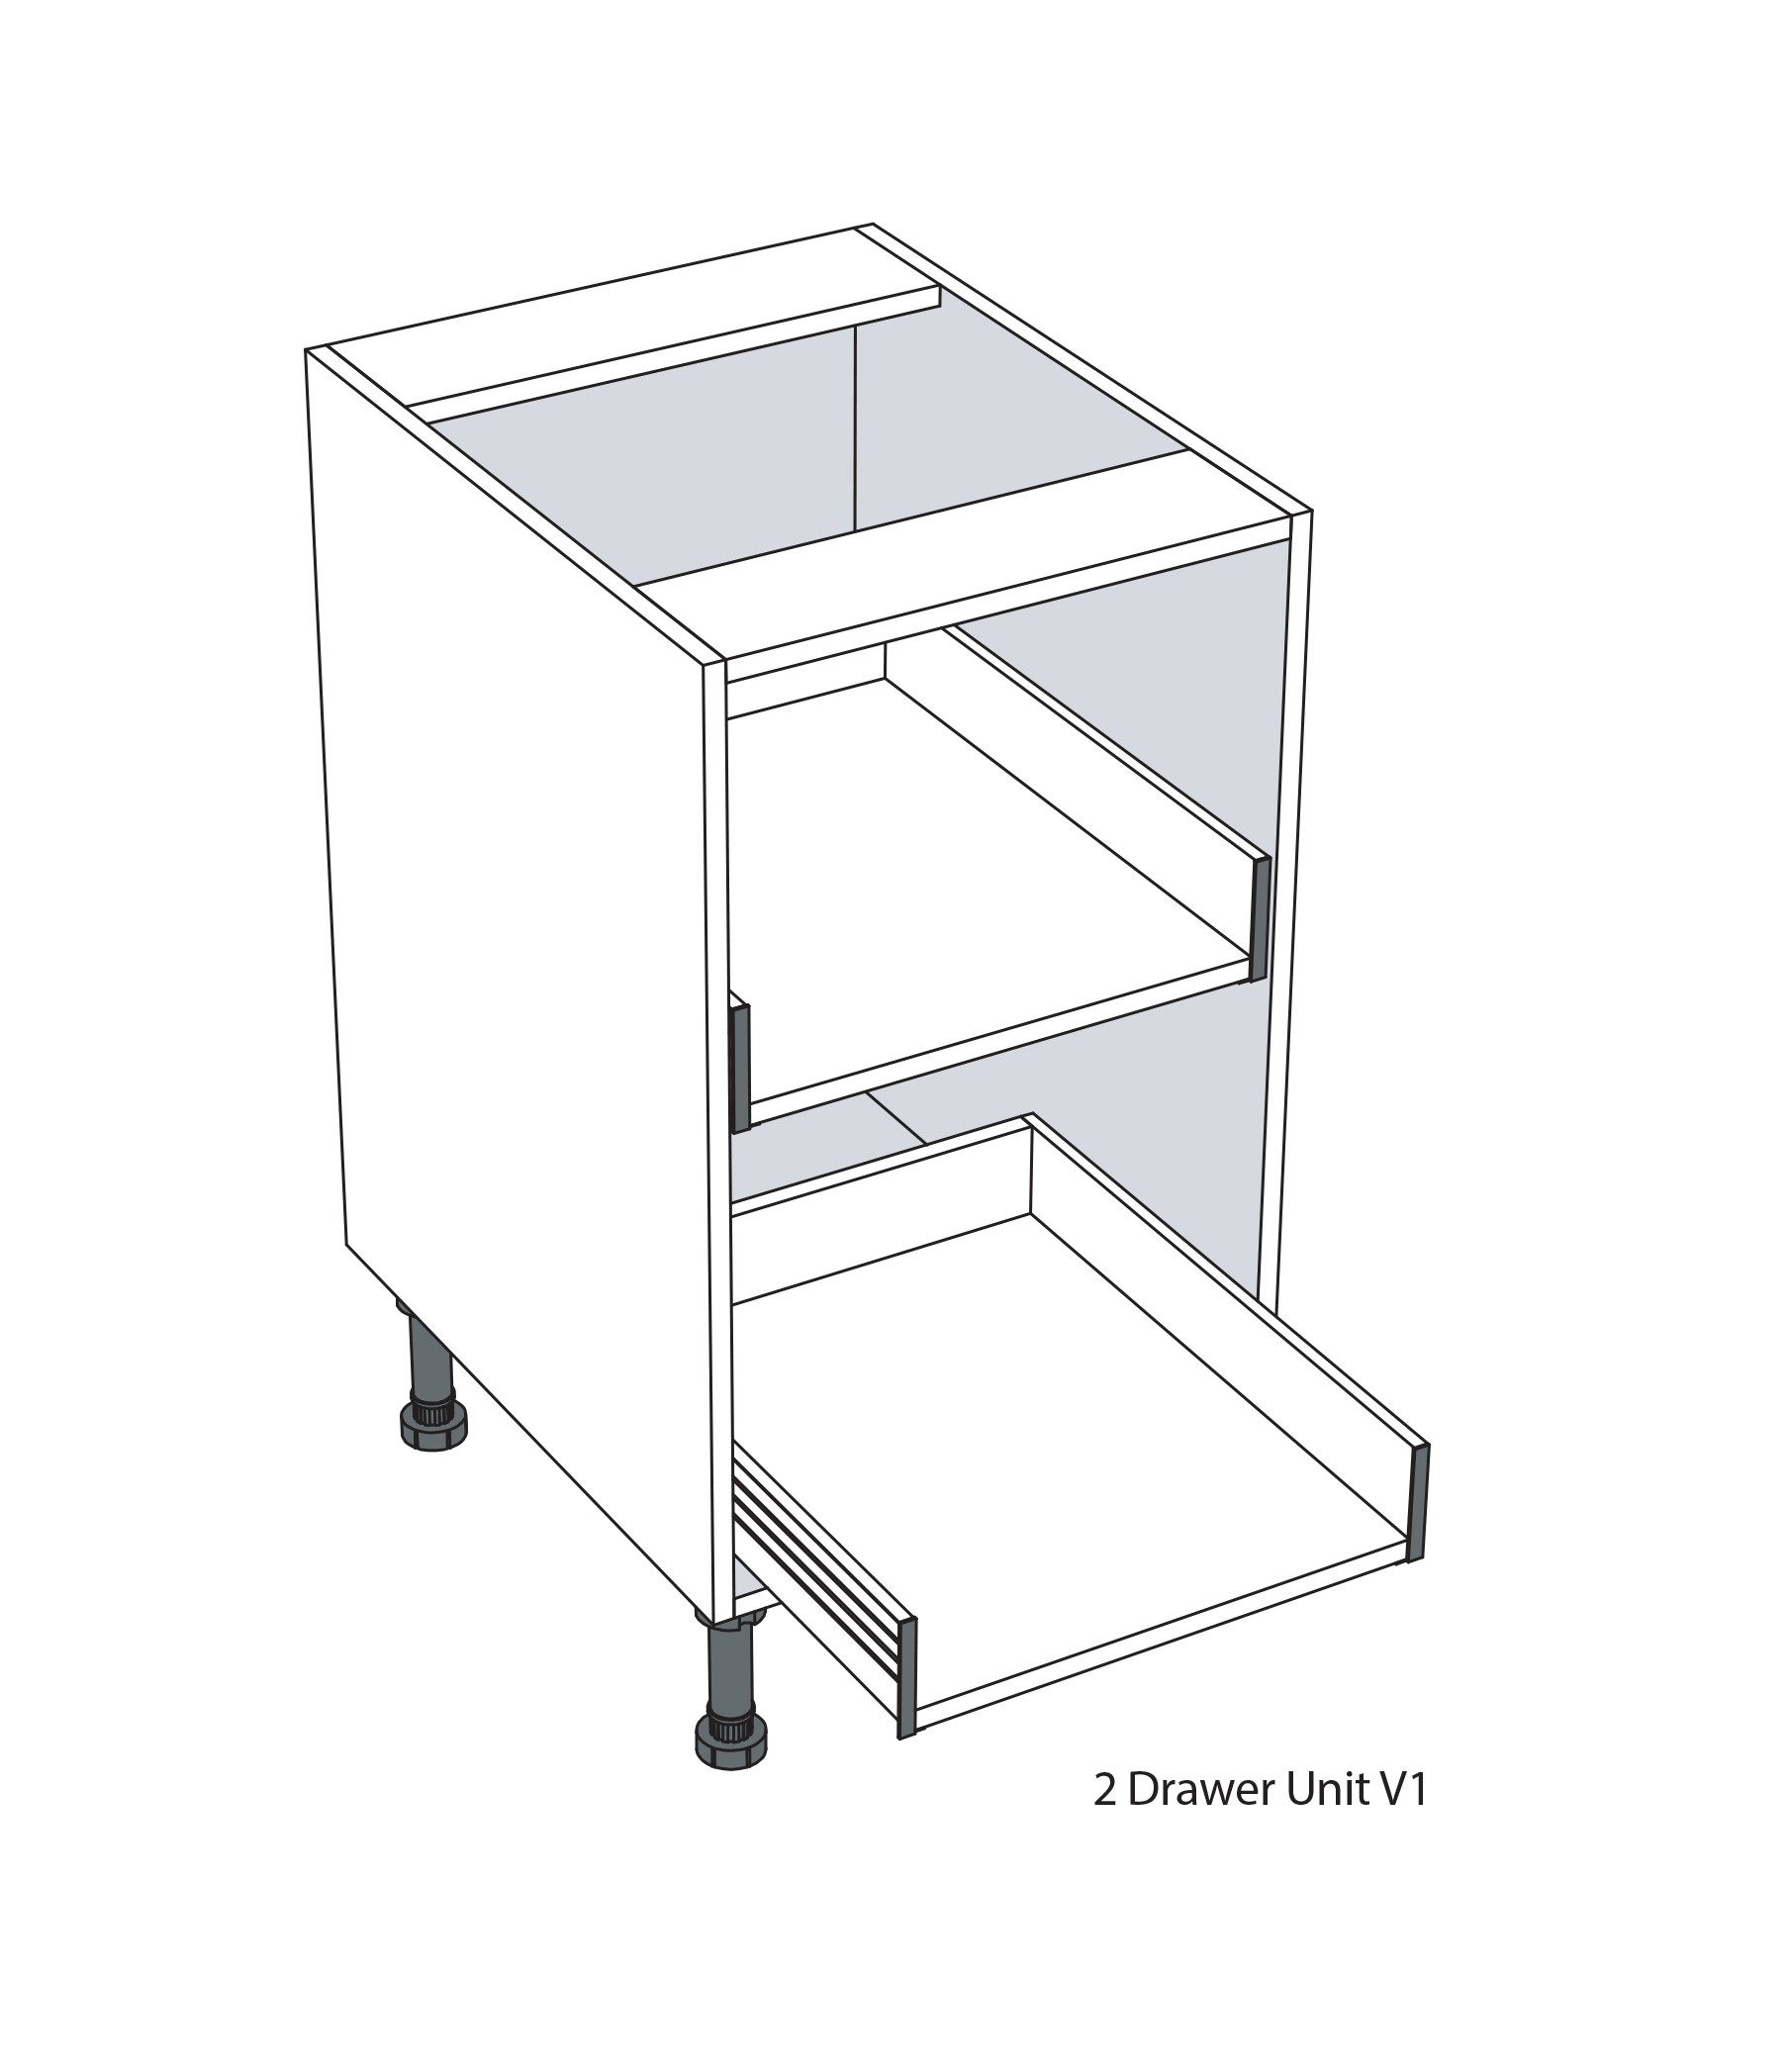 2 Drawer Unit